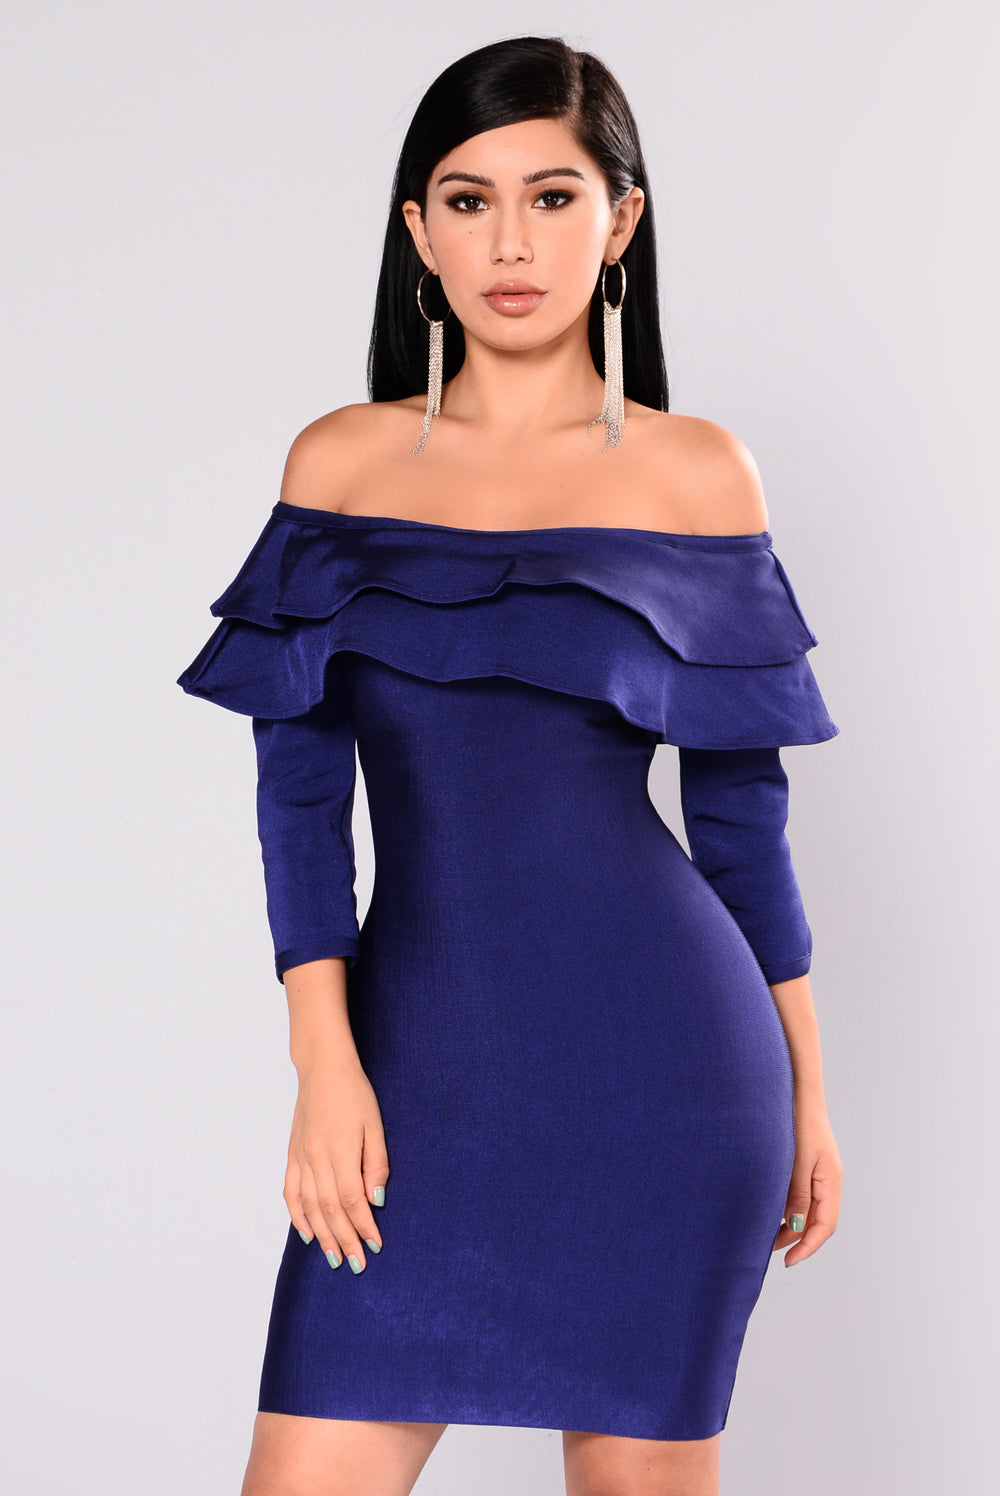 Anastasia Bandage Dress - Navy